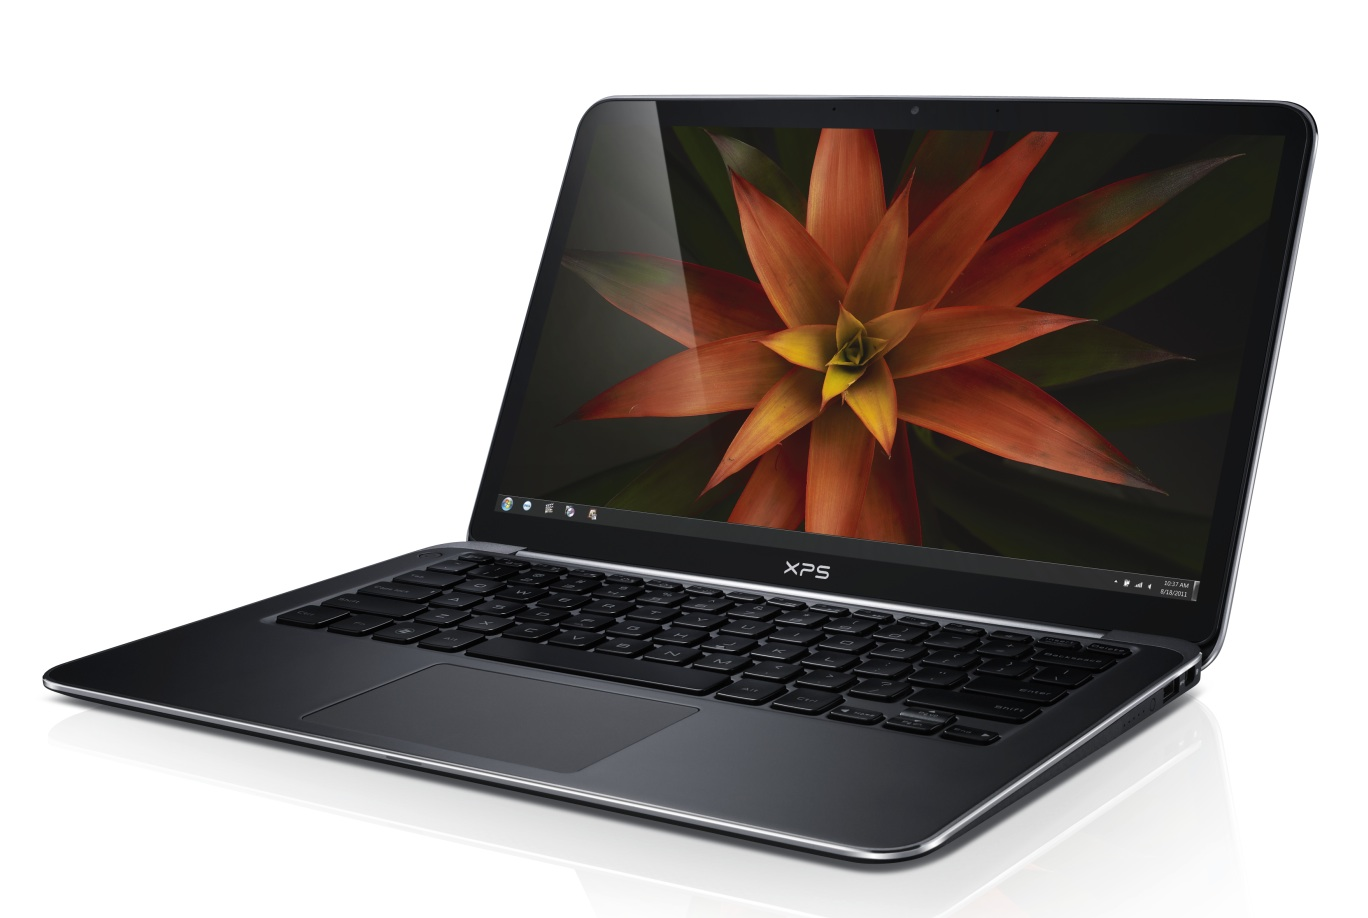 How can I upgrade from windows 7 to Windows 10? - Dell ...